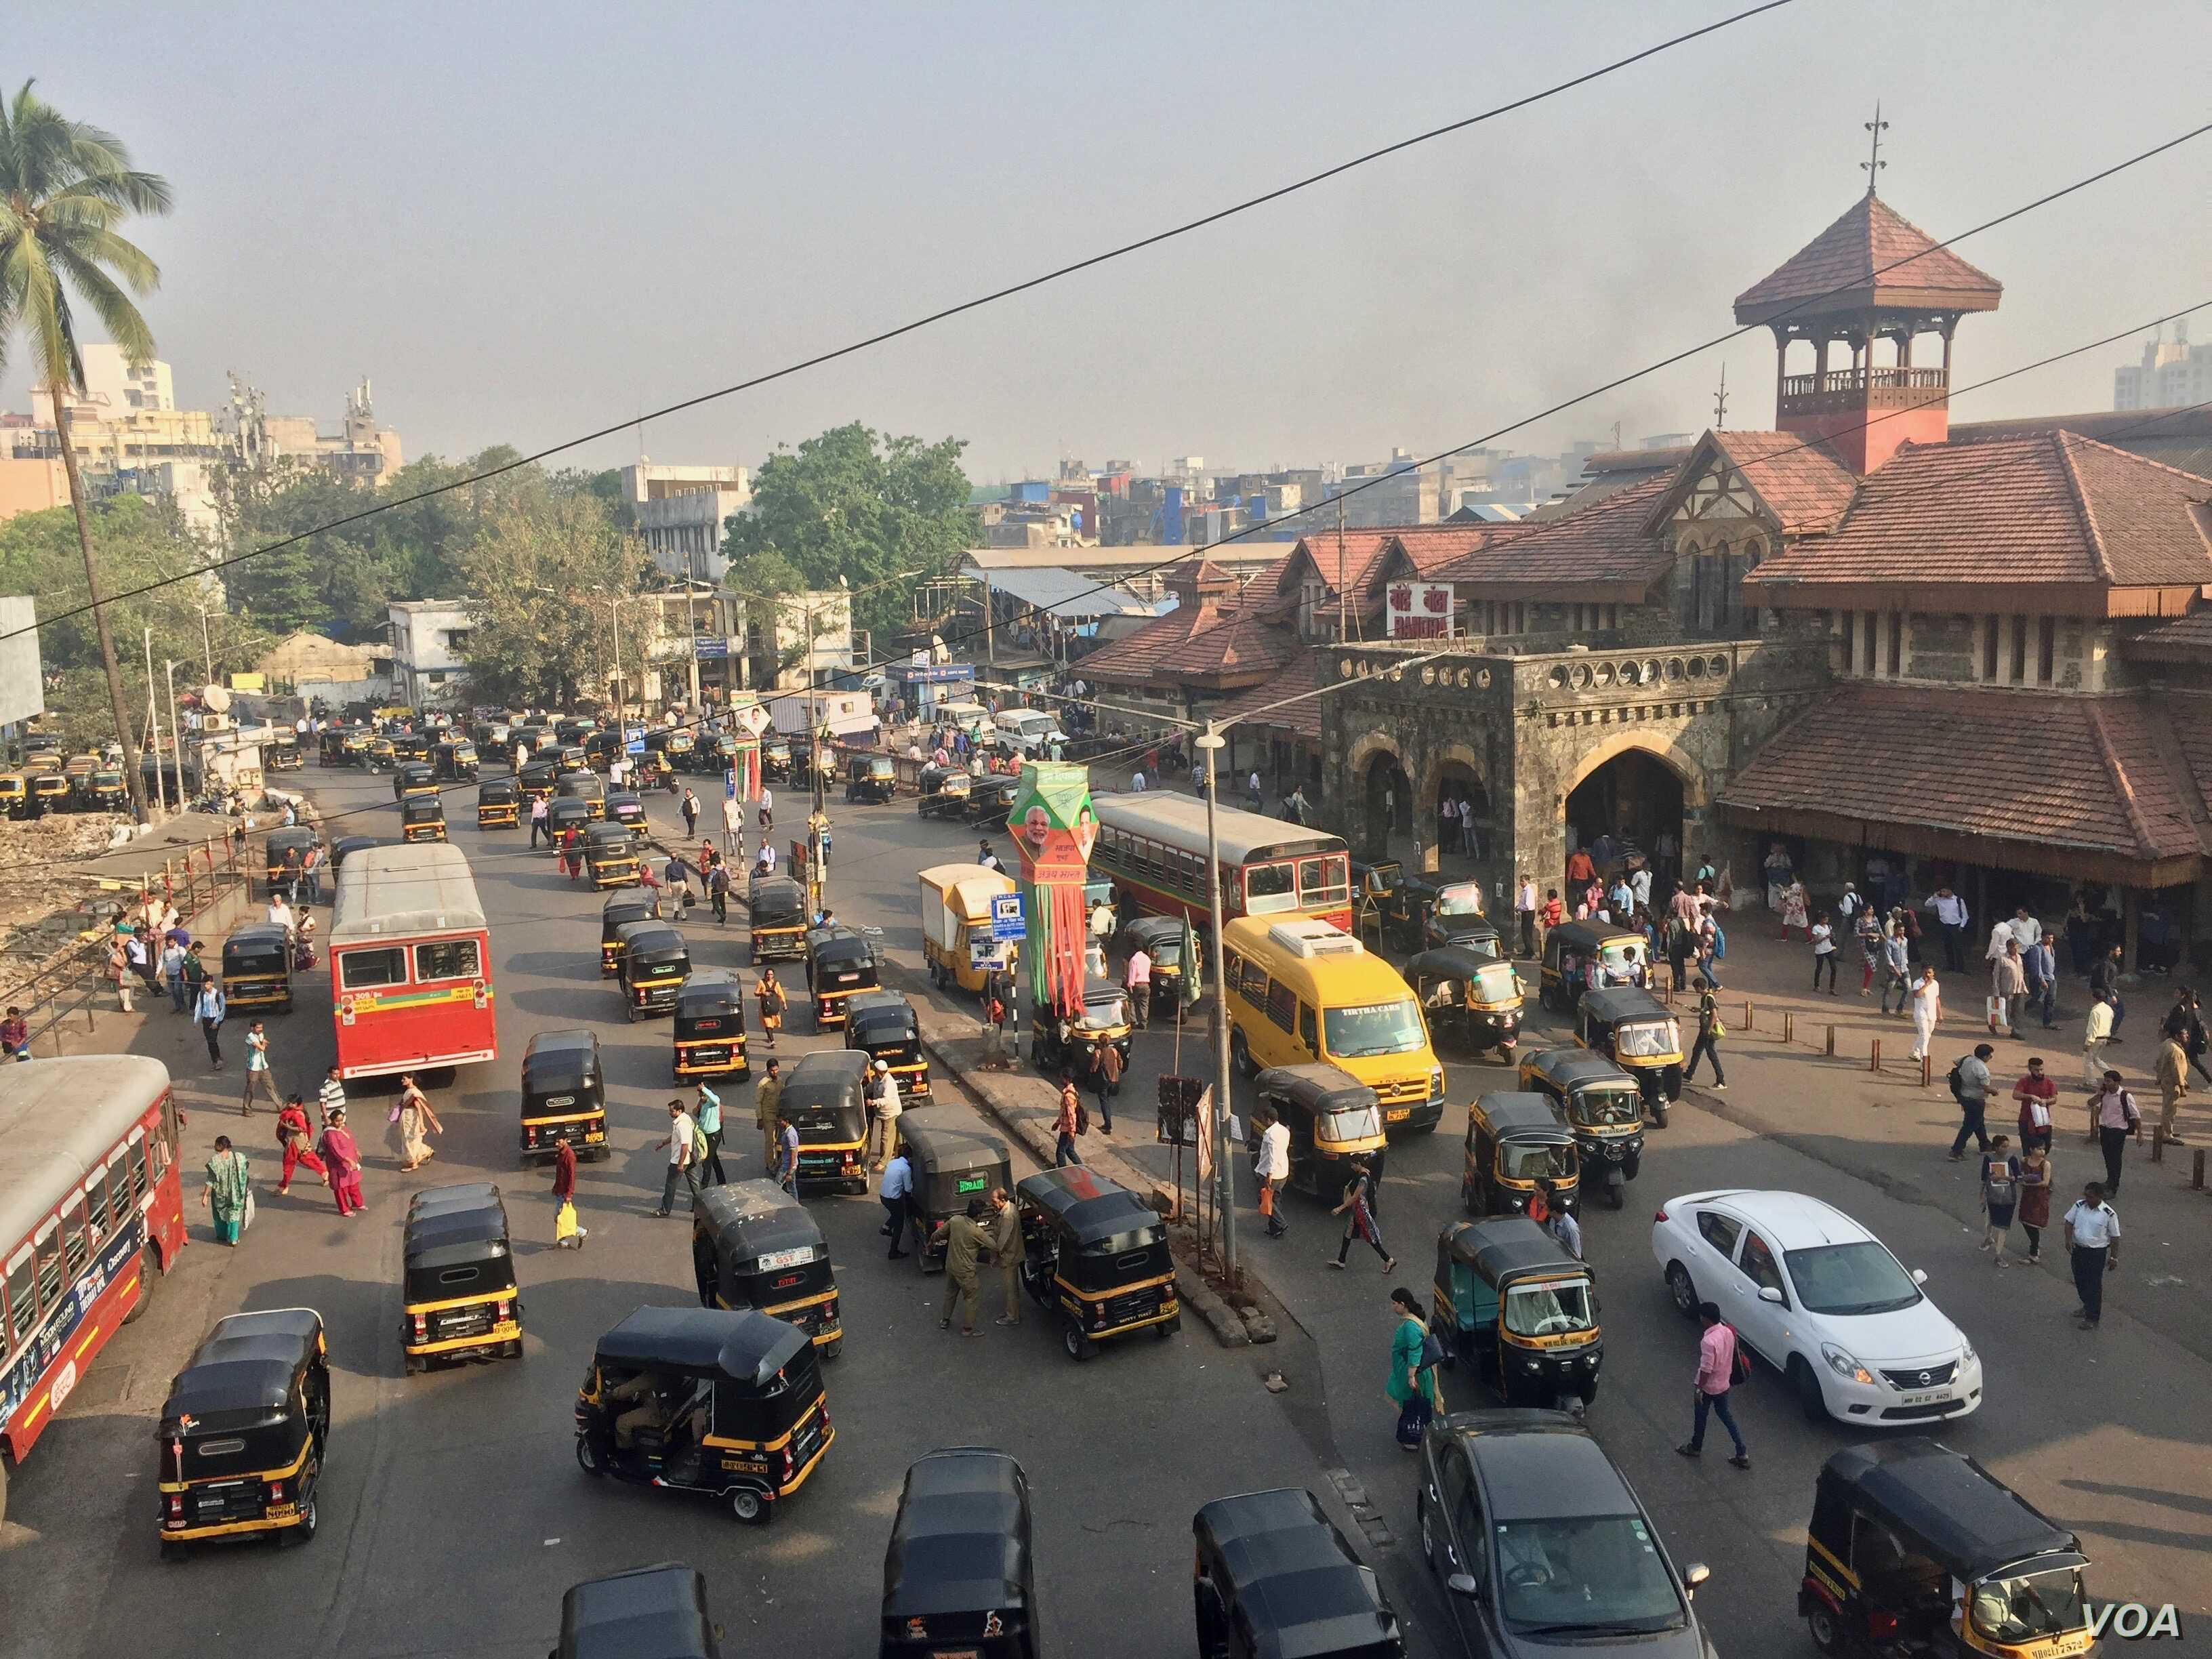 Although the air in cities like Mumbai is not as dirty as in Delhi, the problem is worsening and environmentalists warn that much of urban India faces an air pollution crisis.